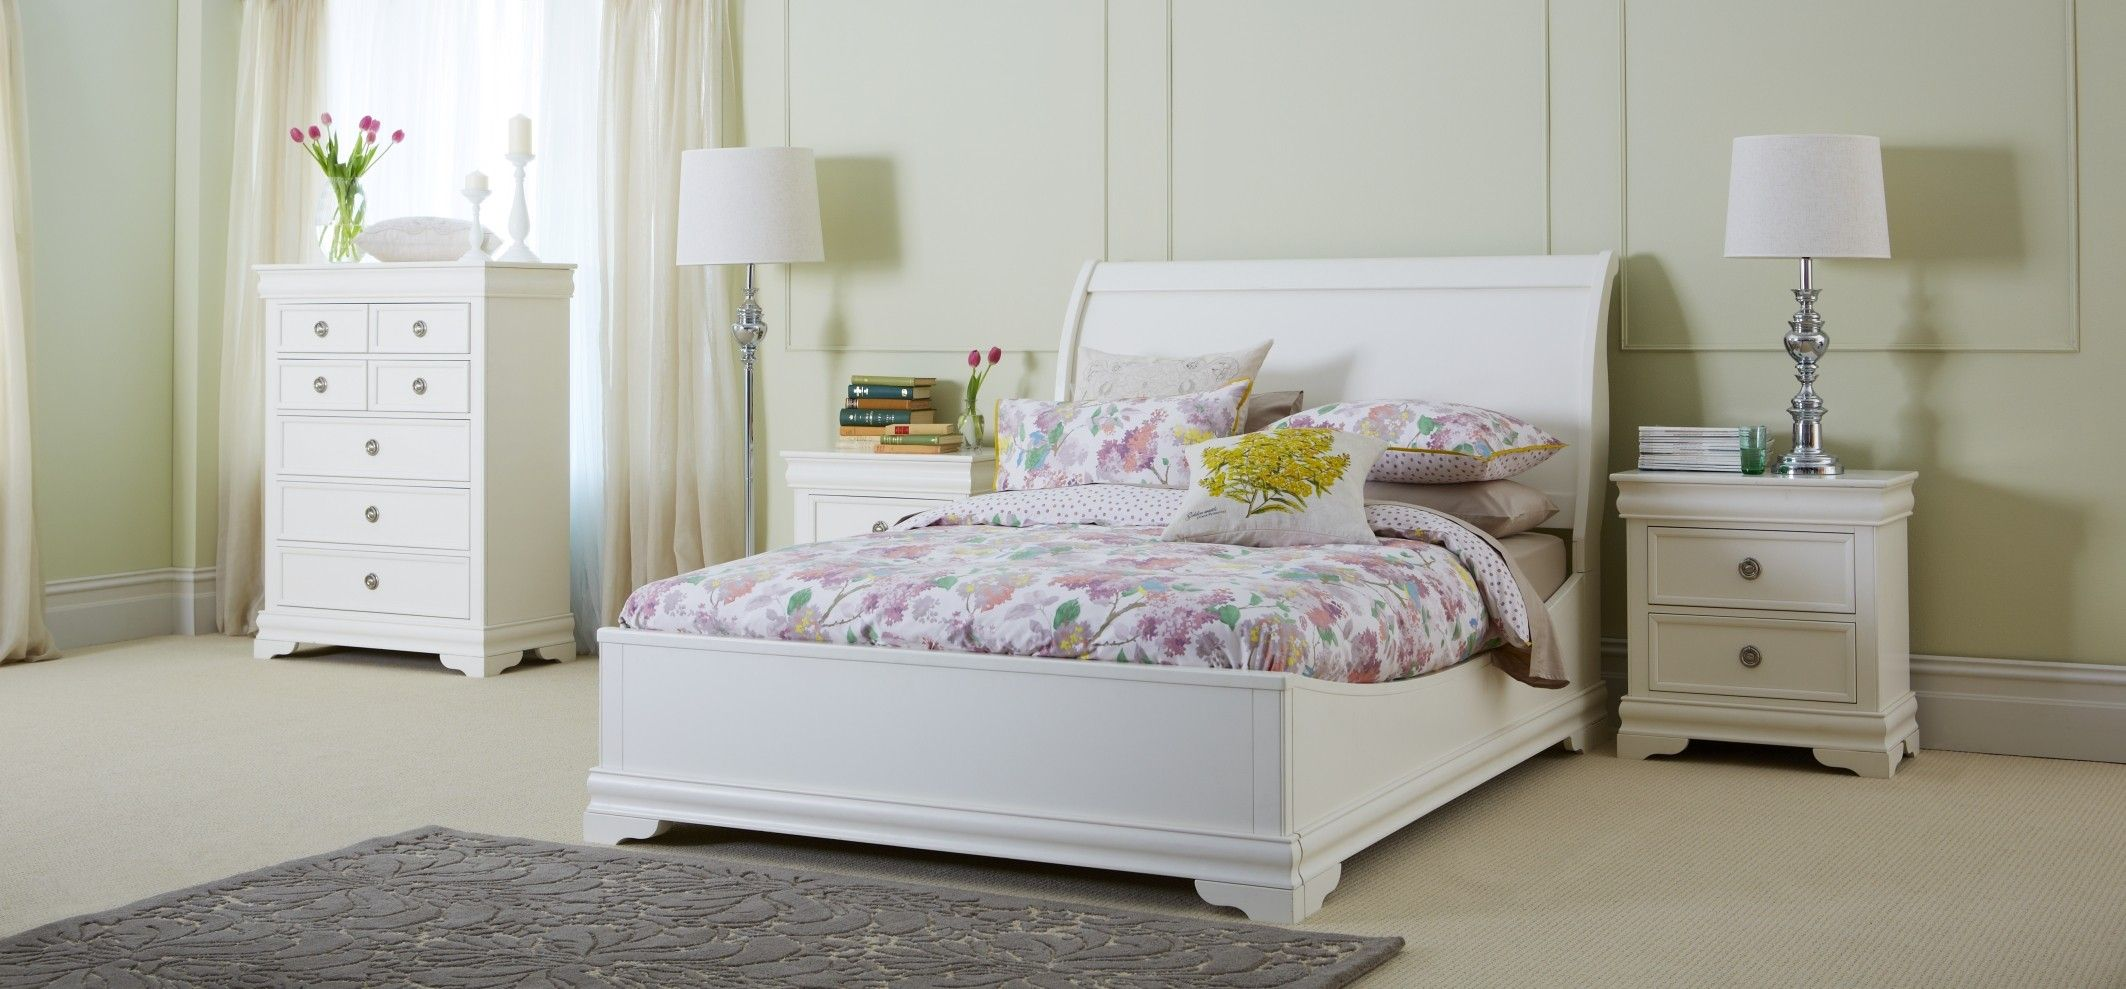 Solid Wood White Bedroom Furniture White Bedroom Set Furniture Wood Bedroom Furniture Sets White Bedroom Furniture Girl